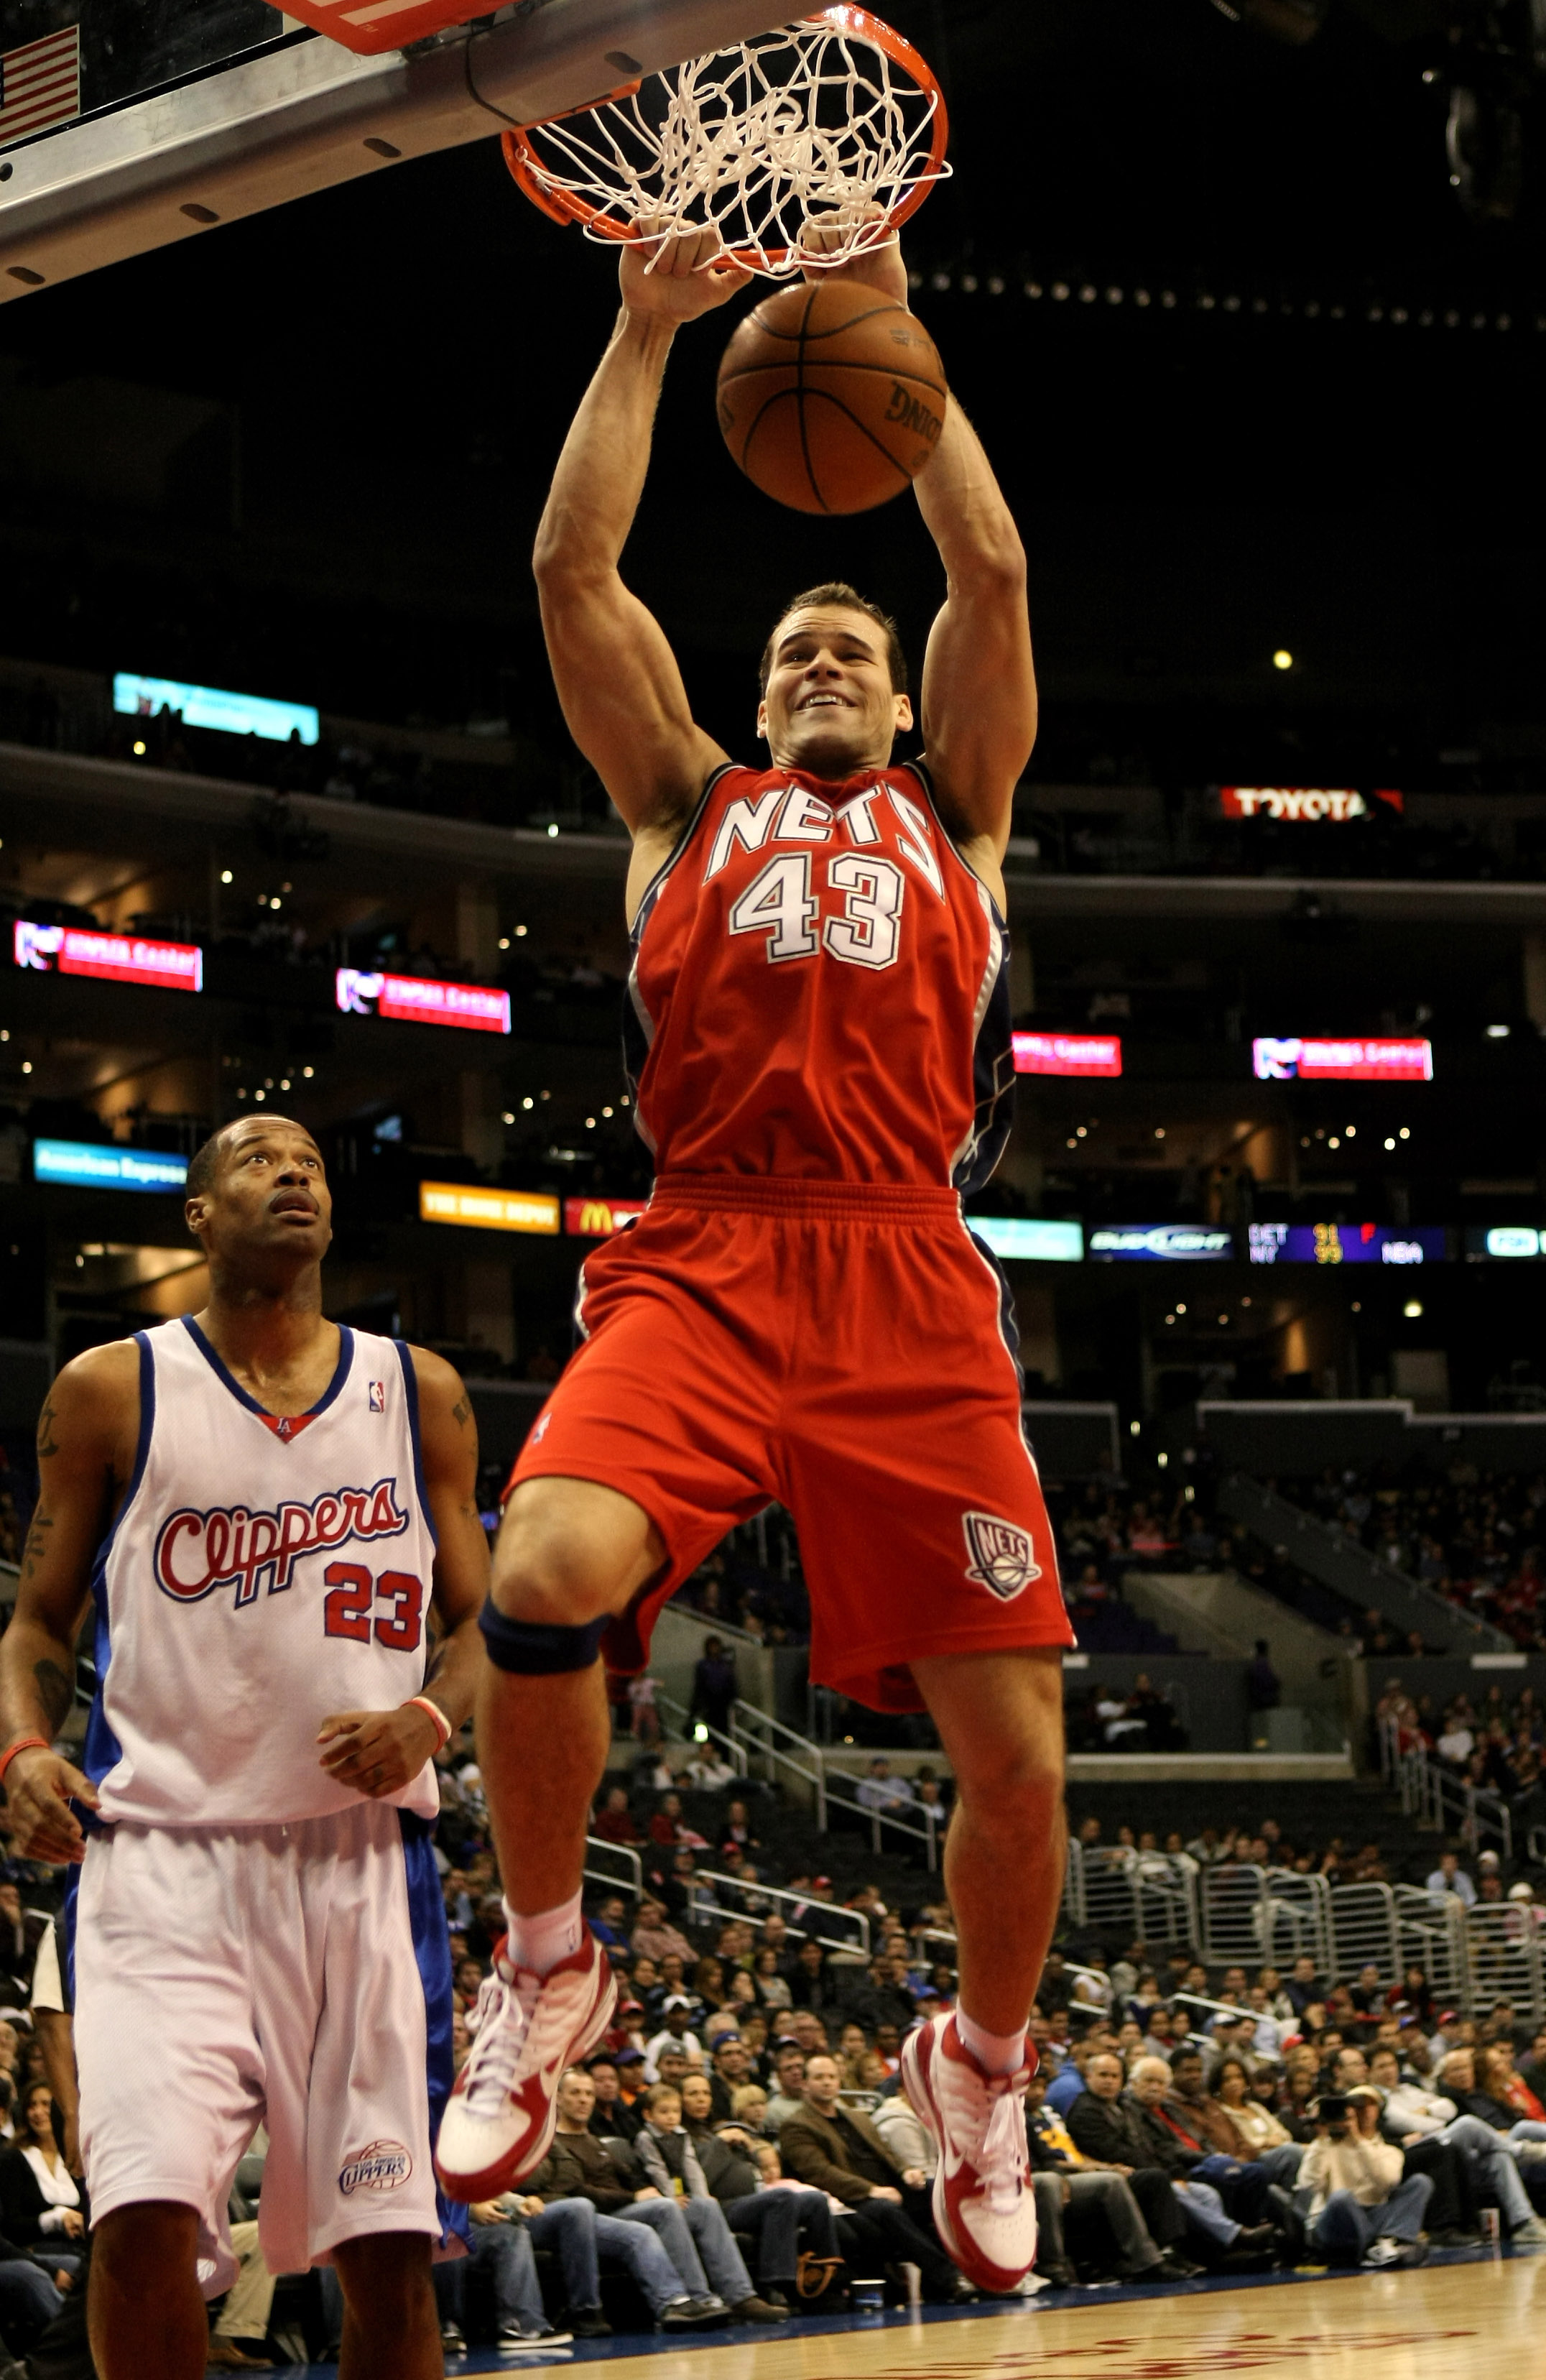 Kris Humphries of the New Jersey Nets.